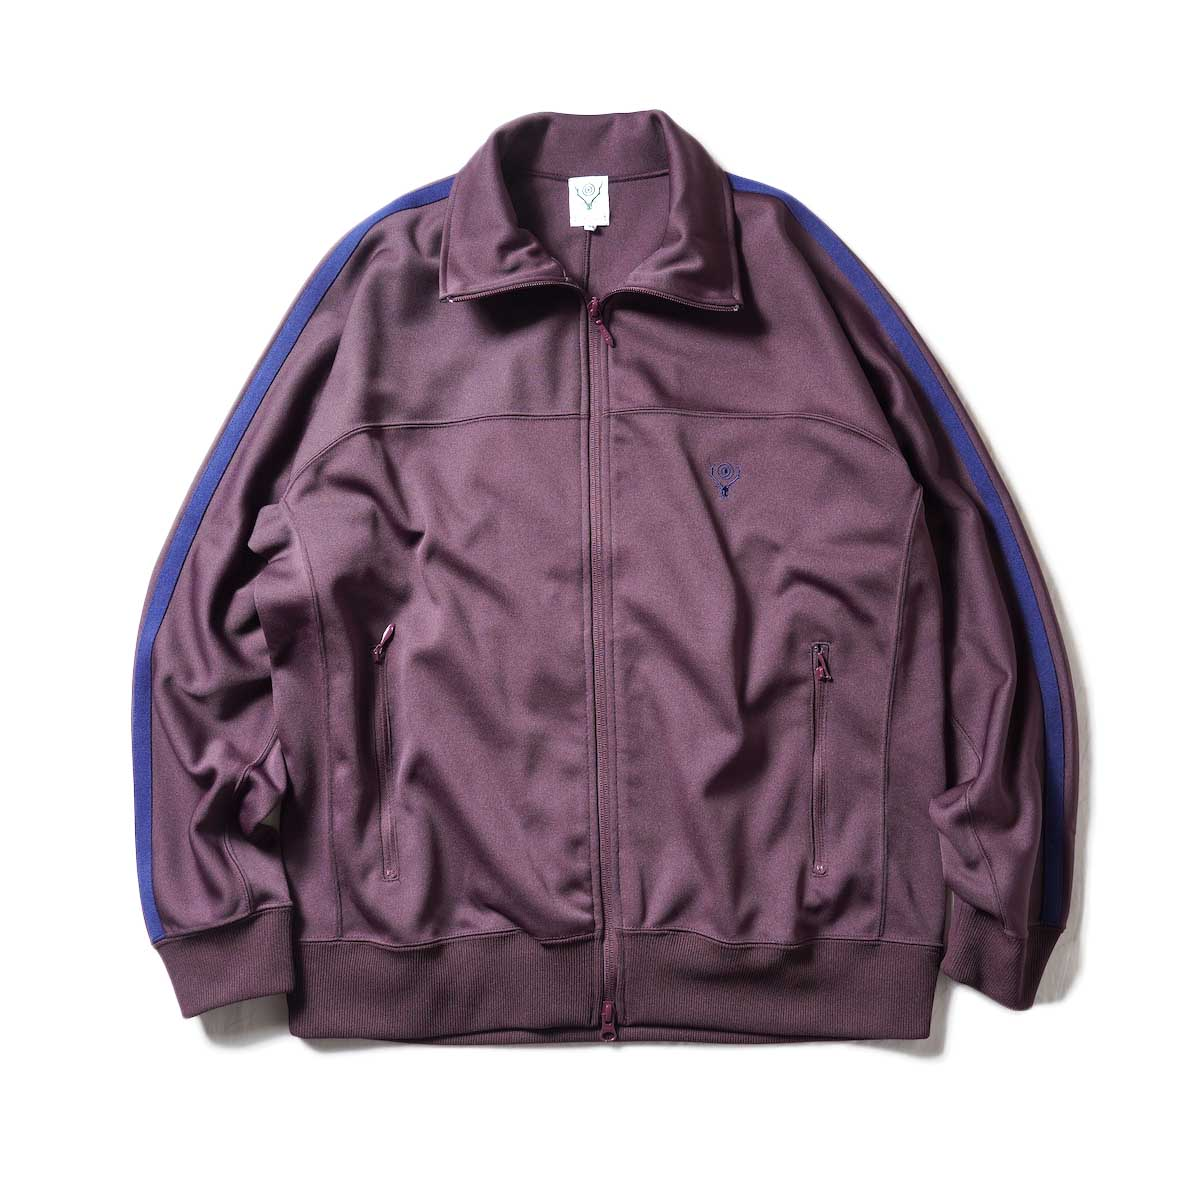 South2 West8 / Trainer jacket - Poly Smooth (Burgundy)正面